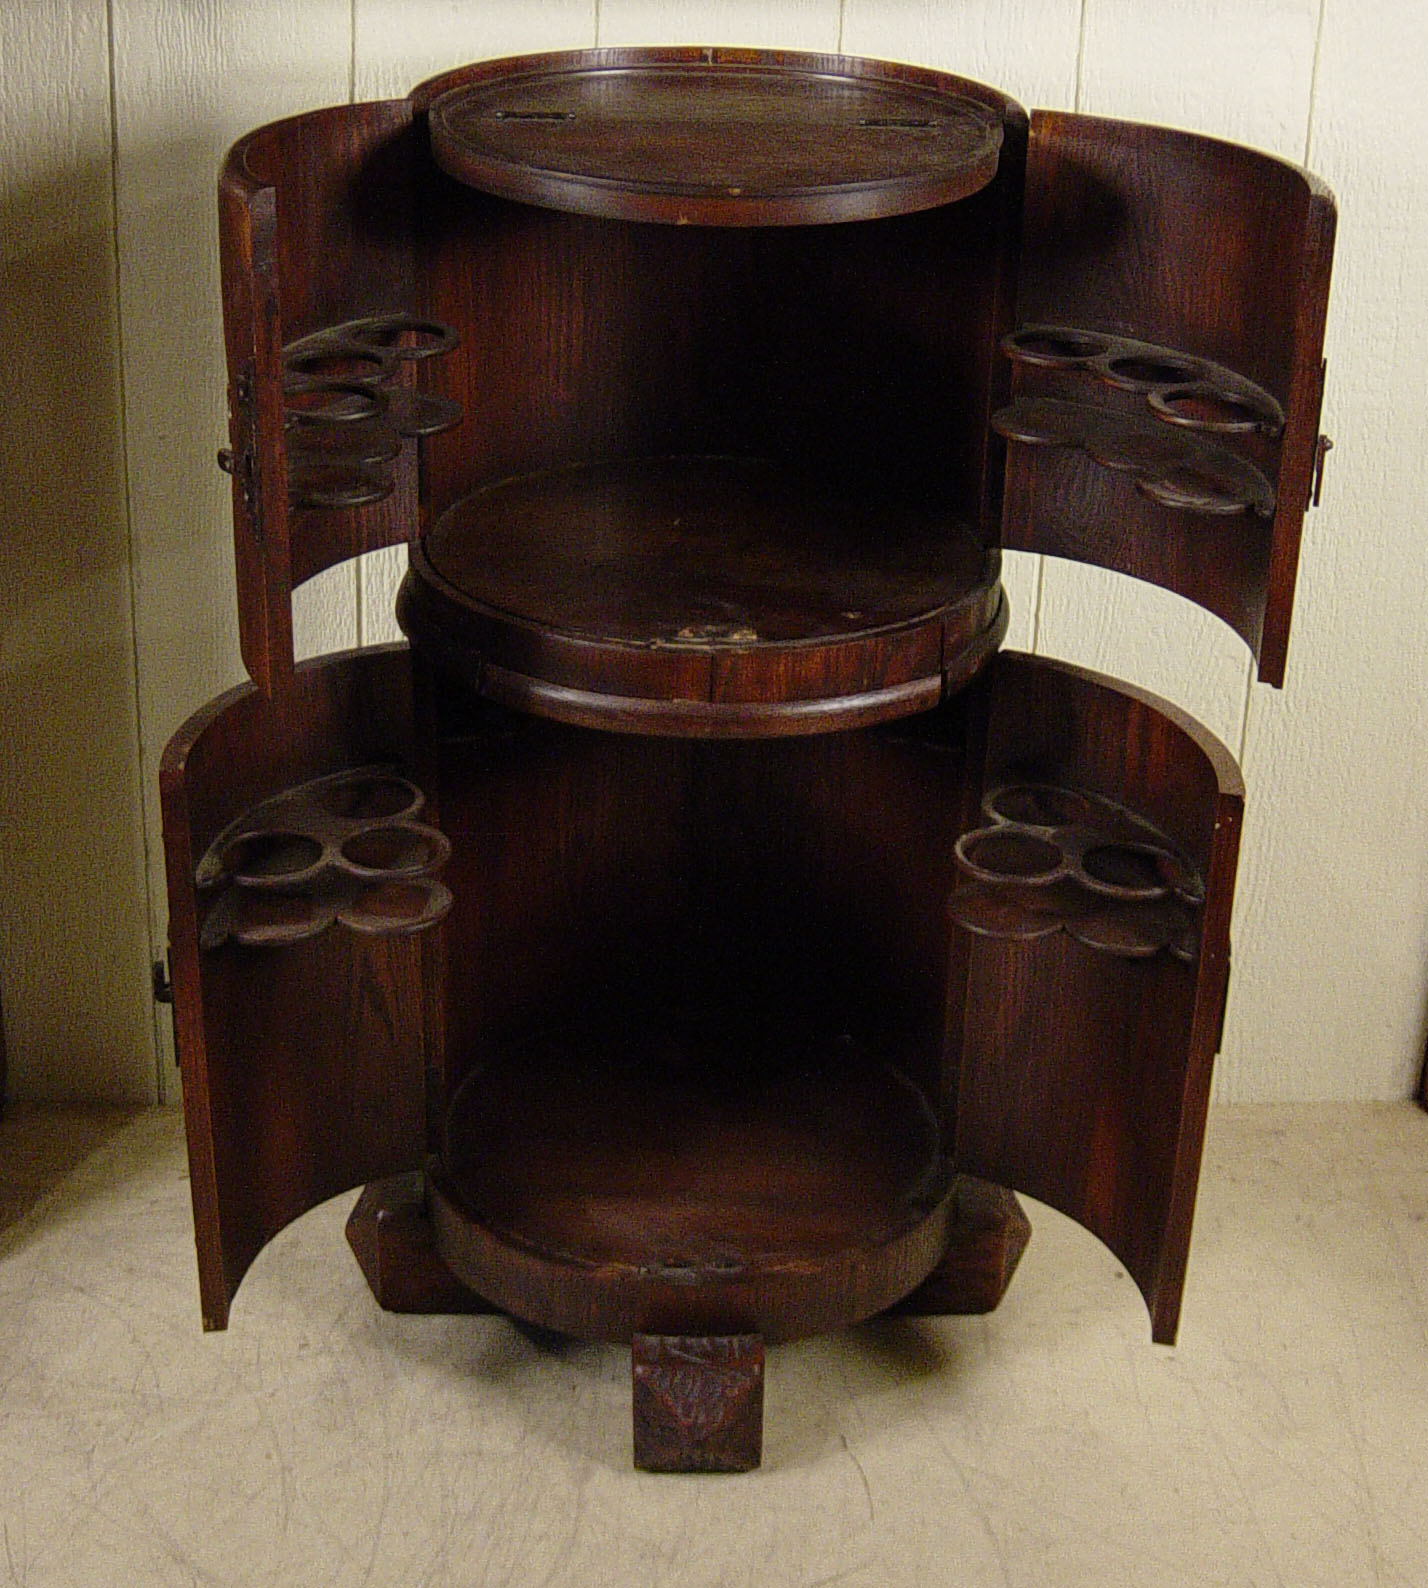 Round Barrell Shaped Liquor Cabinet